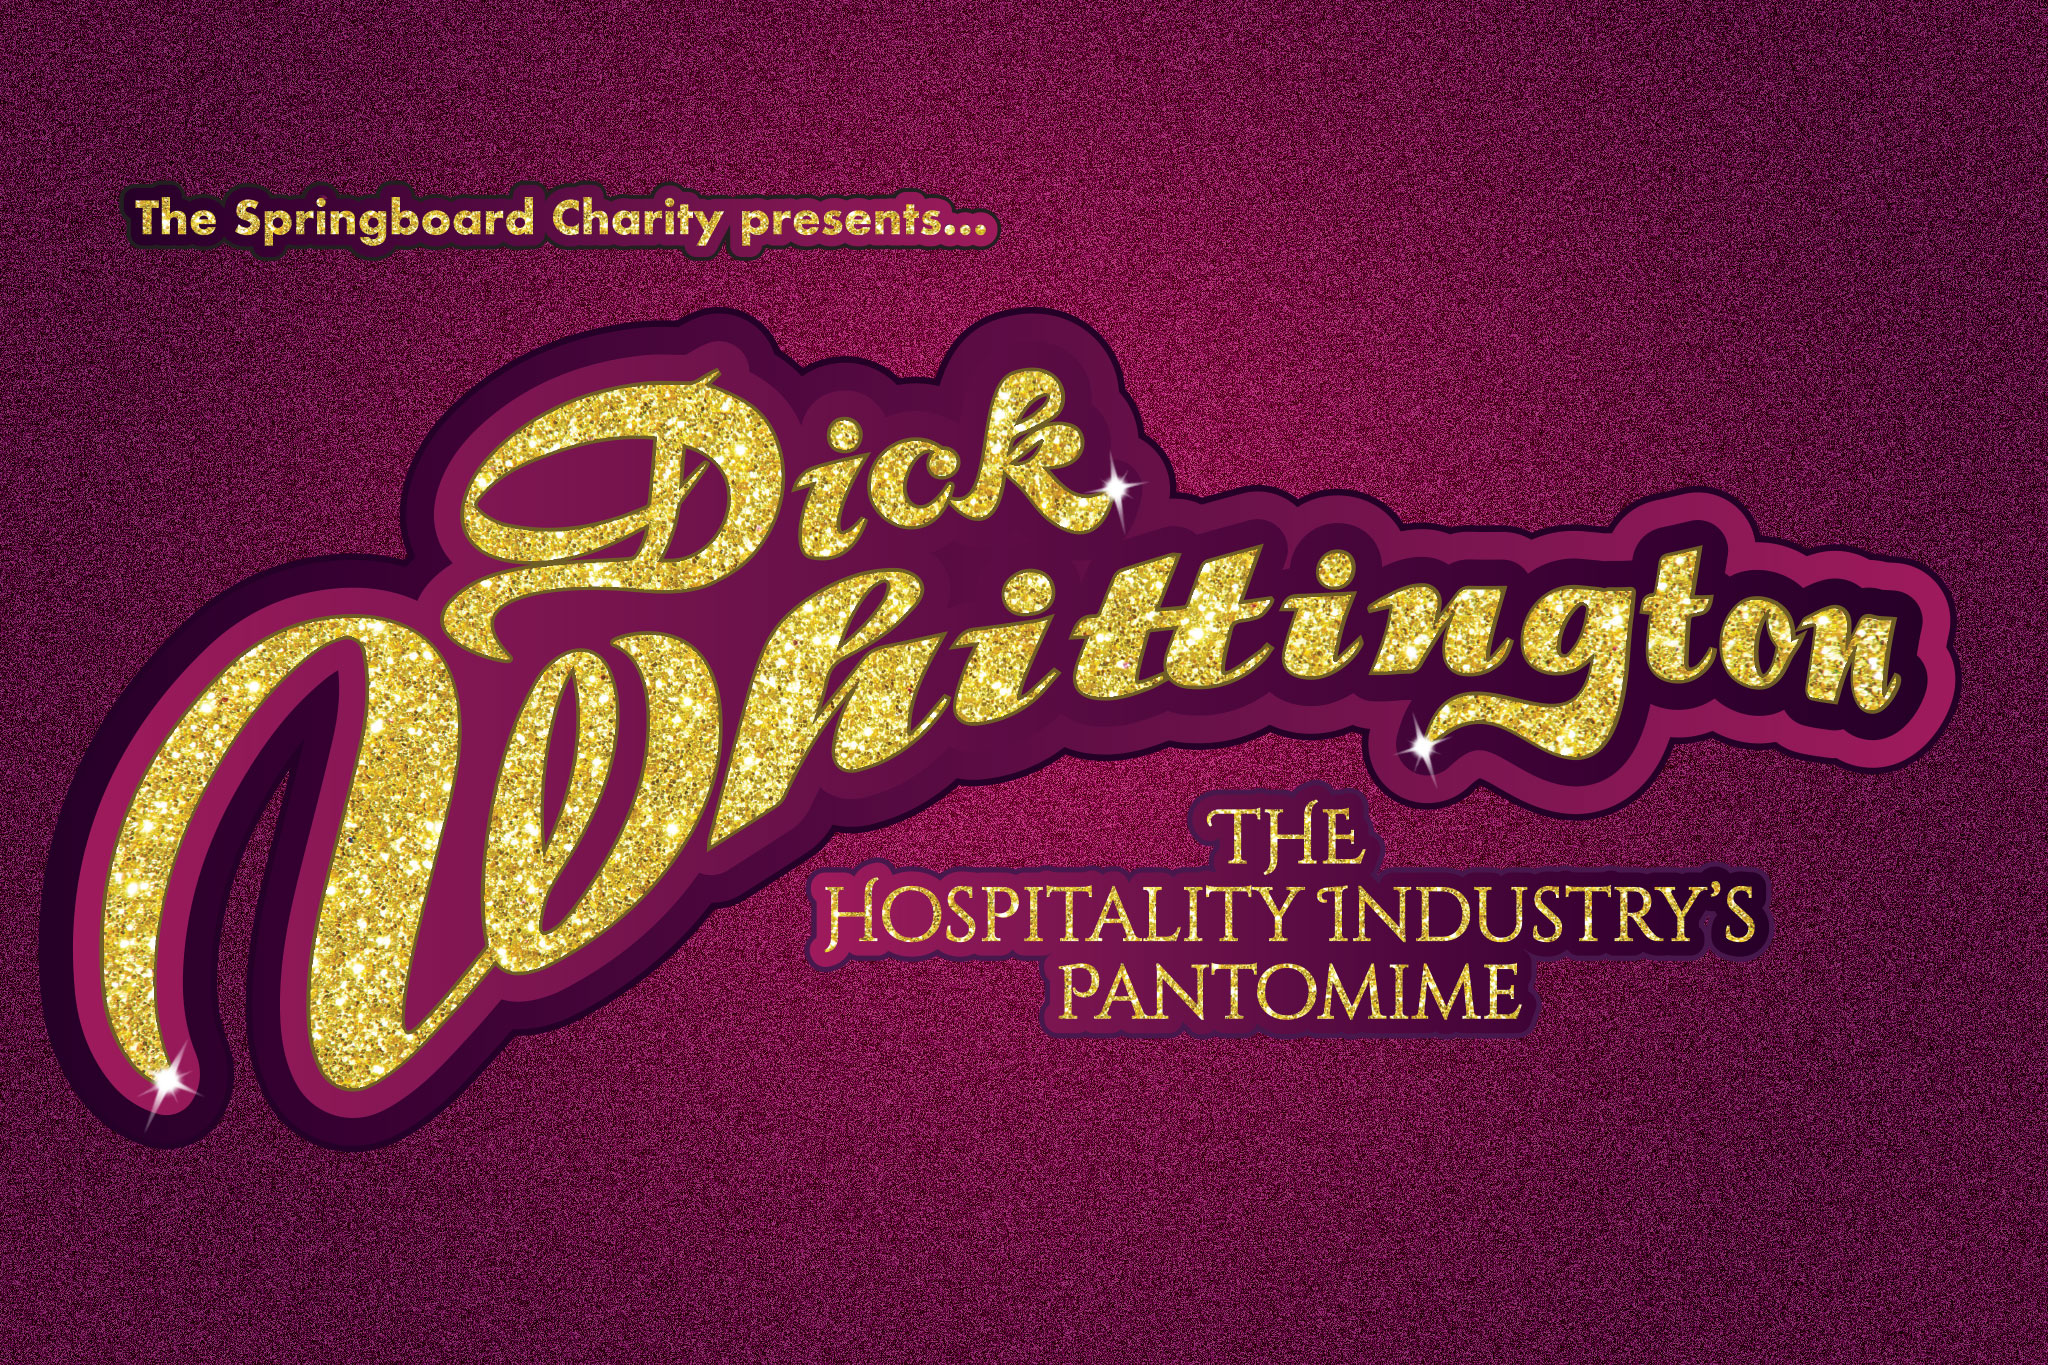 Tickets are now on sale for this year's Hospitality Industry Pantomime - Dick Whittington